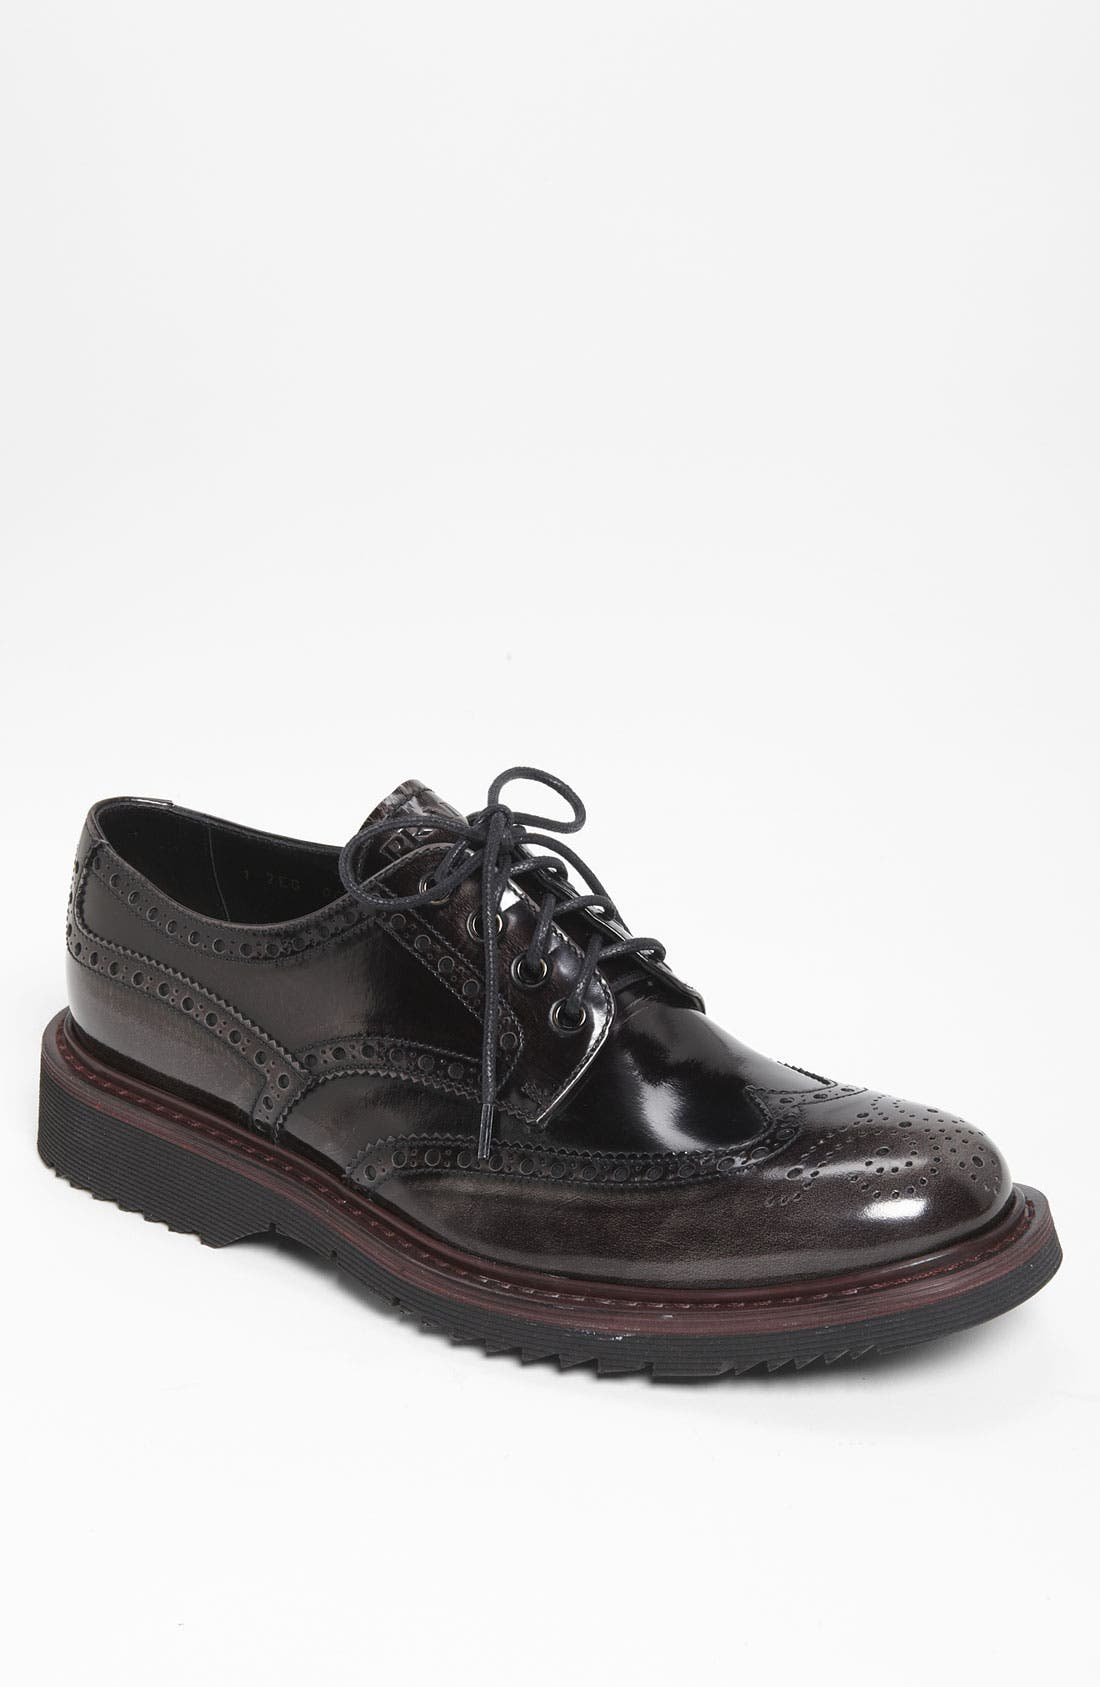 Main Image - Prada Double Sole Wingtip